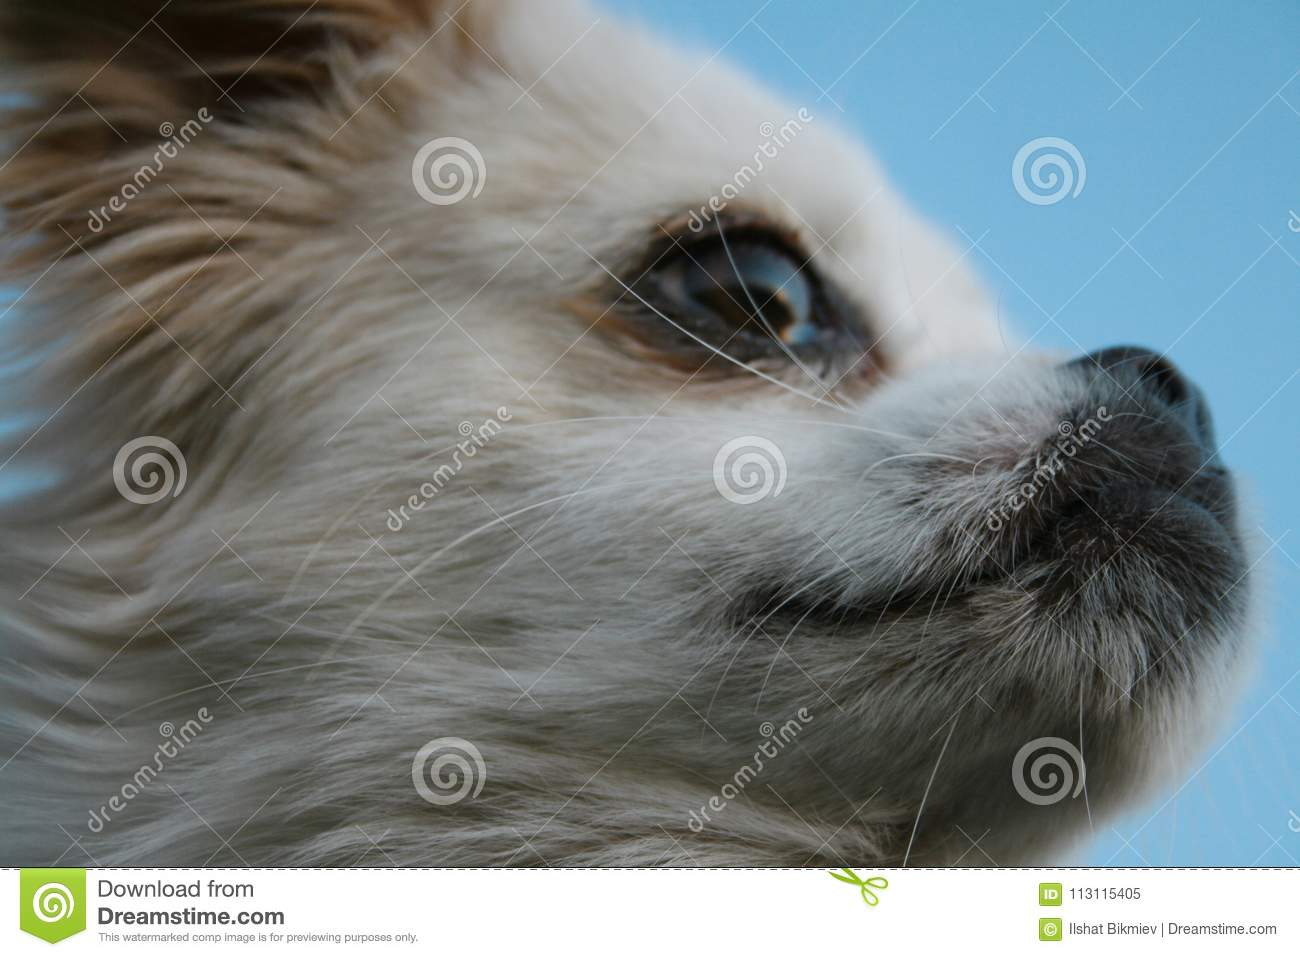 White dog on blue background looking off into the distance.